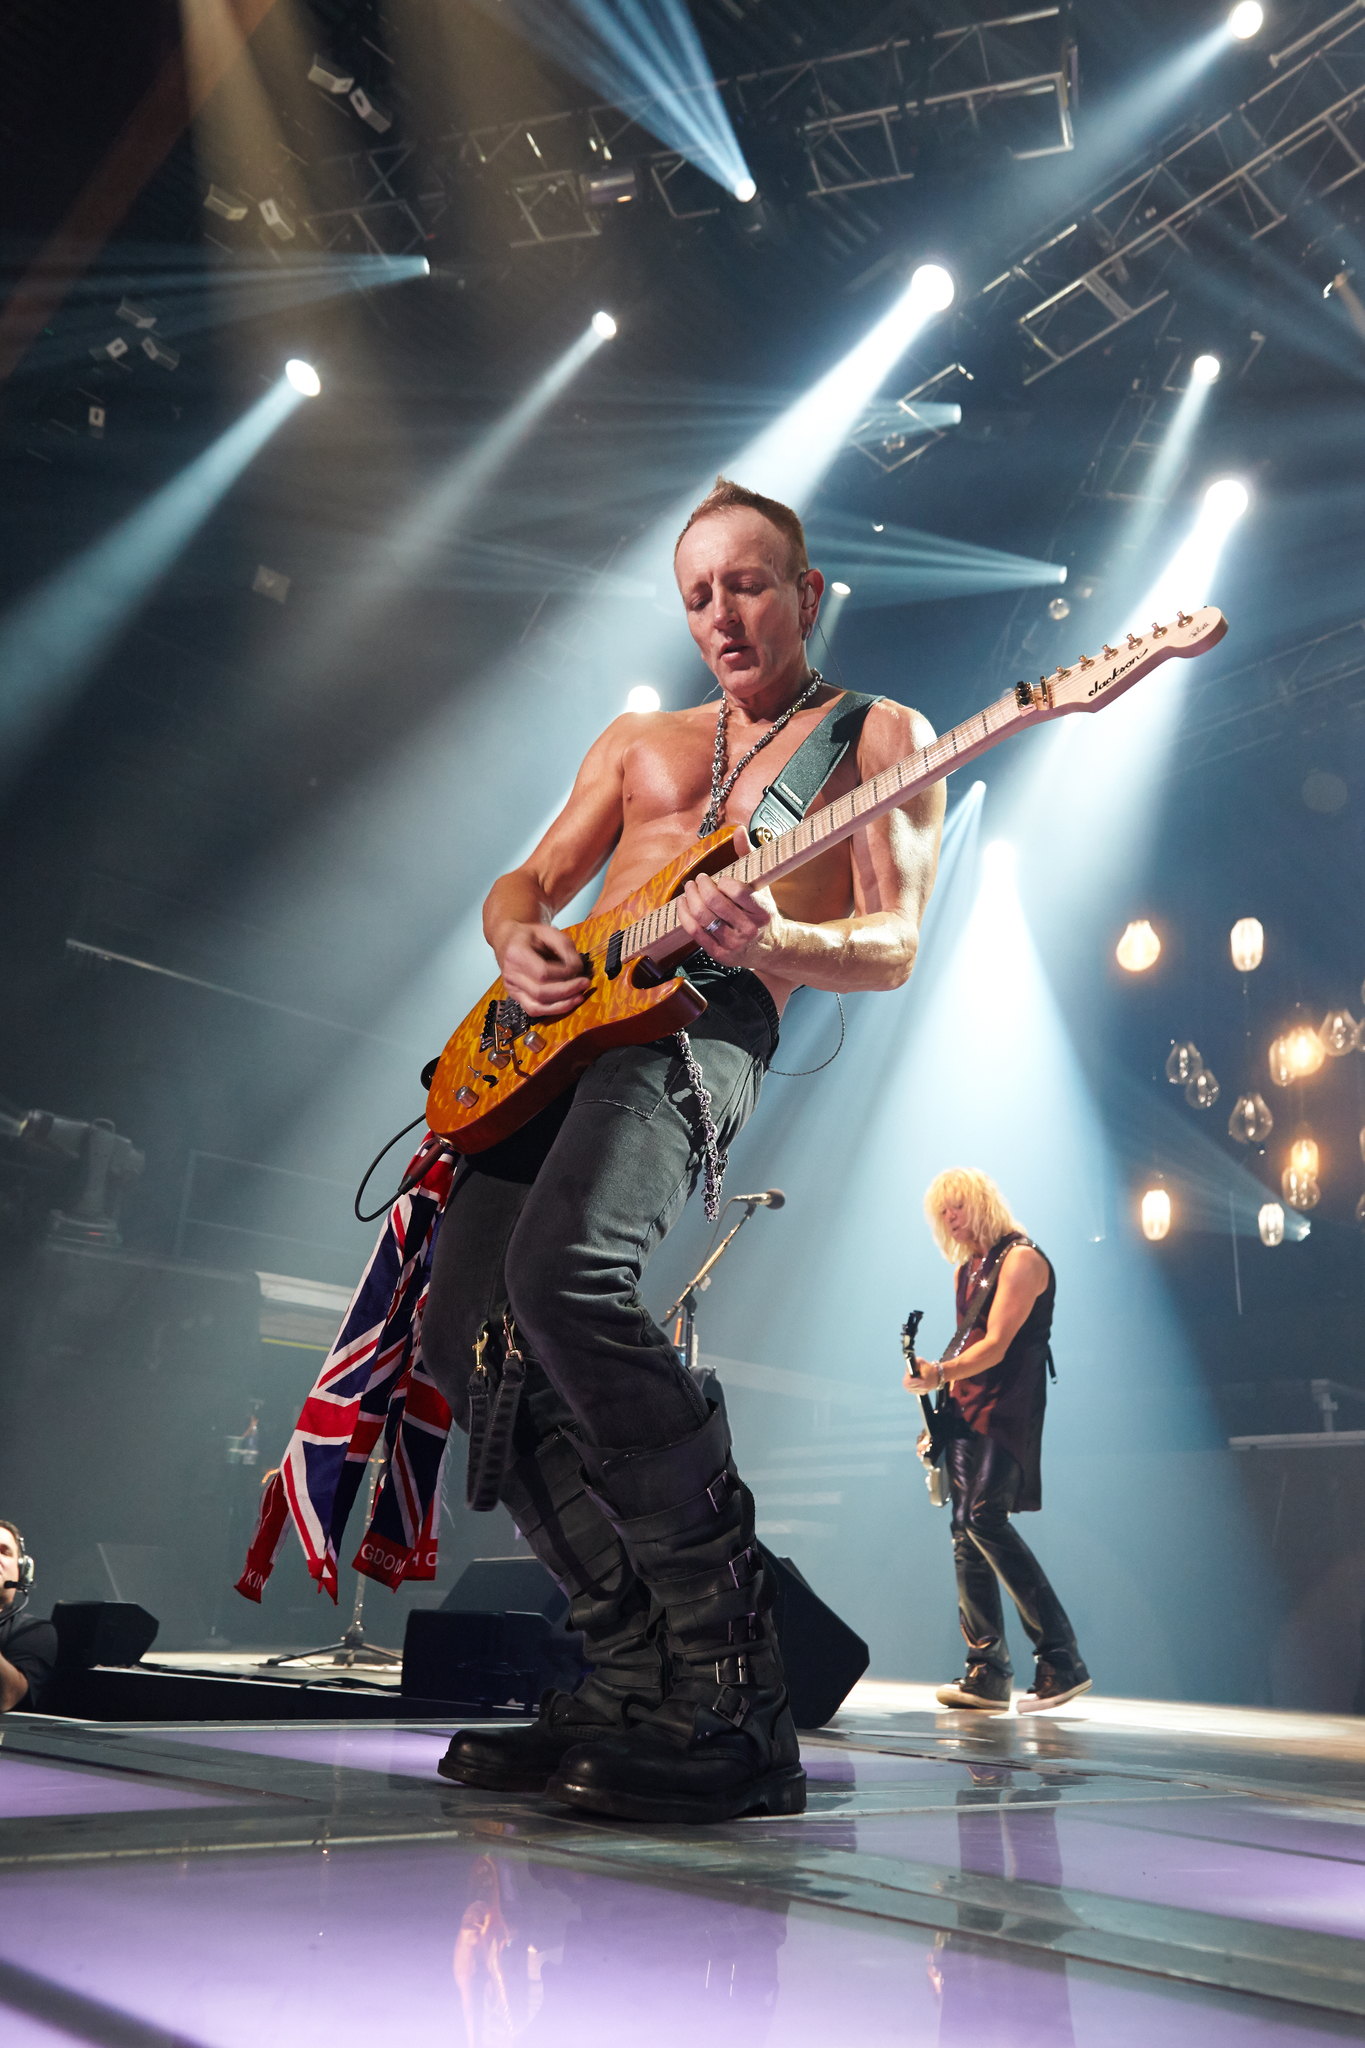 Still of Phil Collen in Def Leppard Viva! Hysteria Concert (2013)